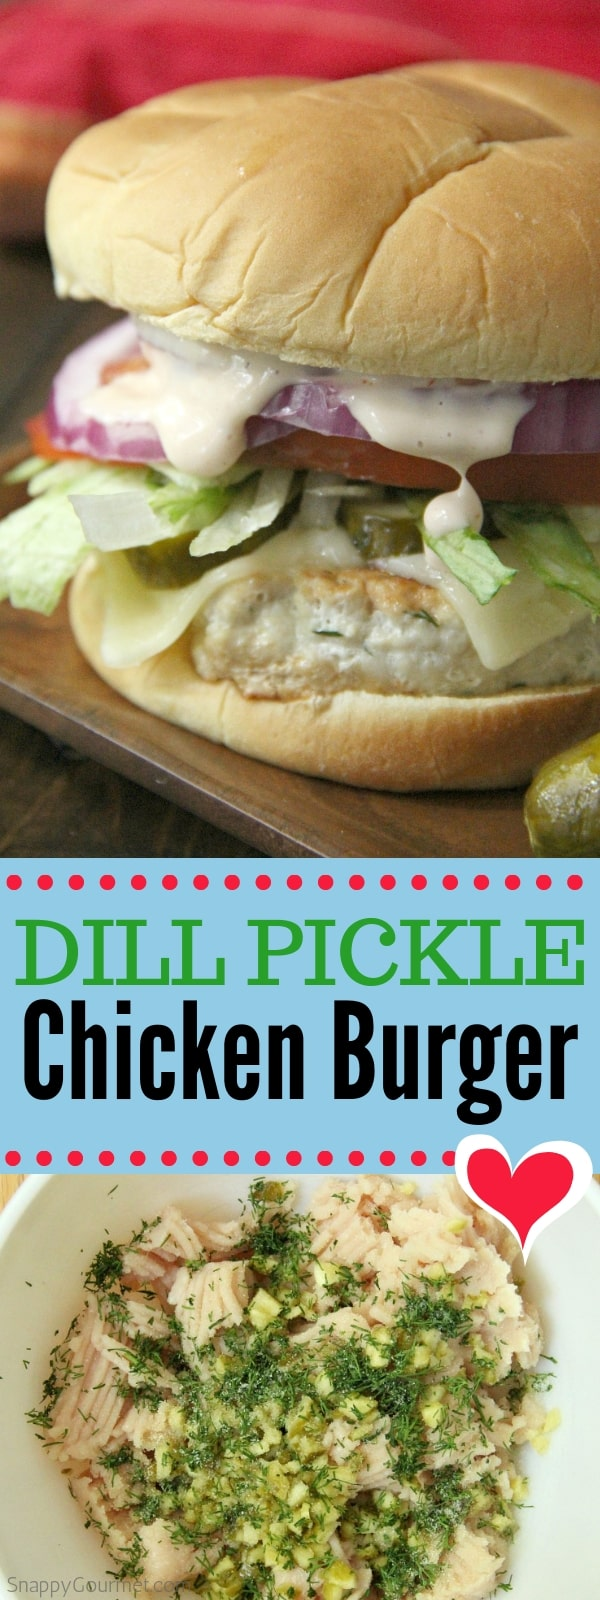 Dill Pickle Chicken Burger collage